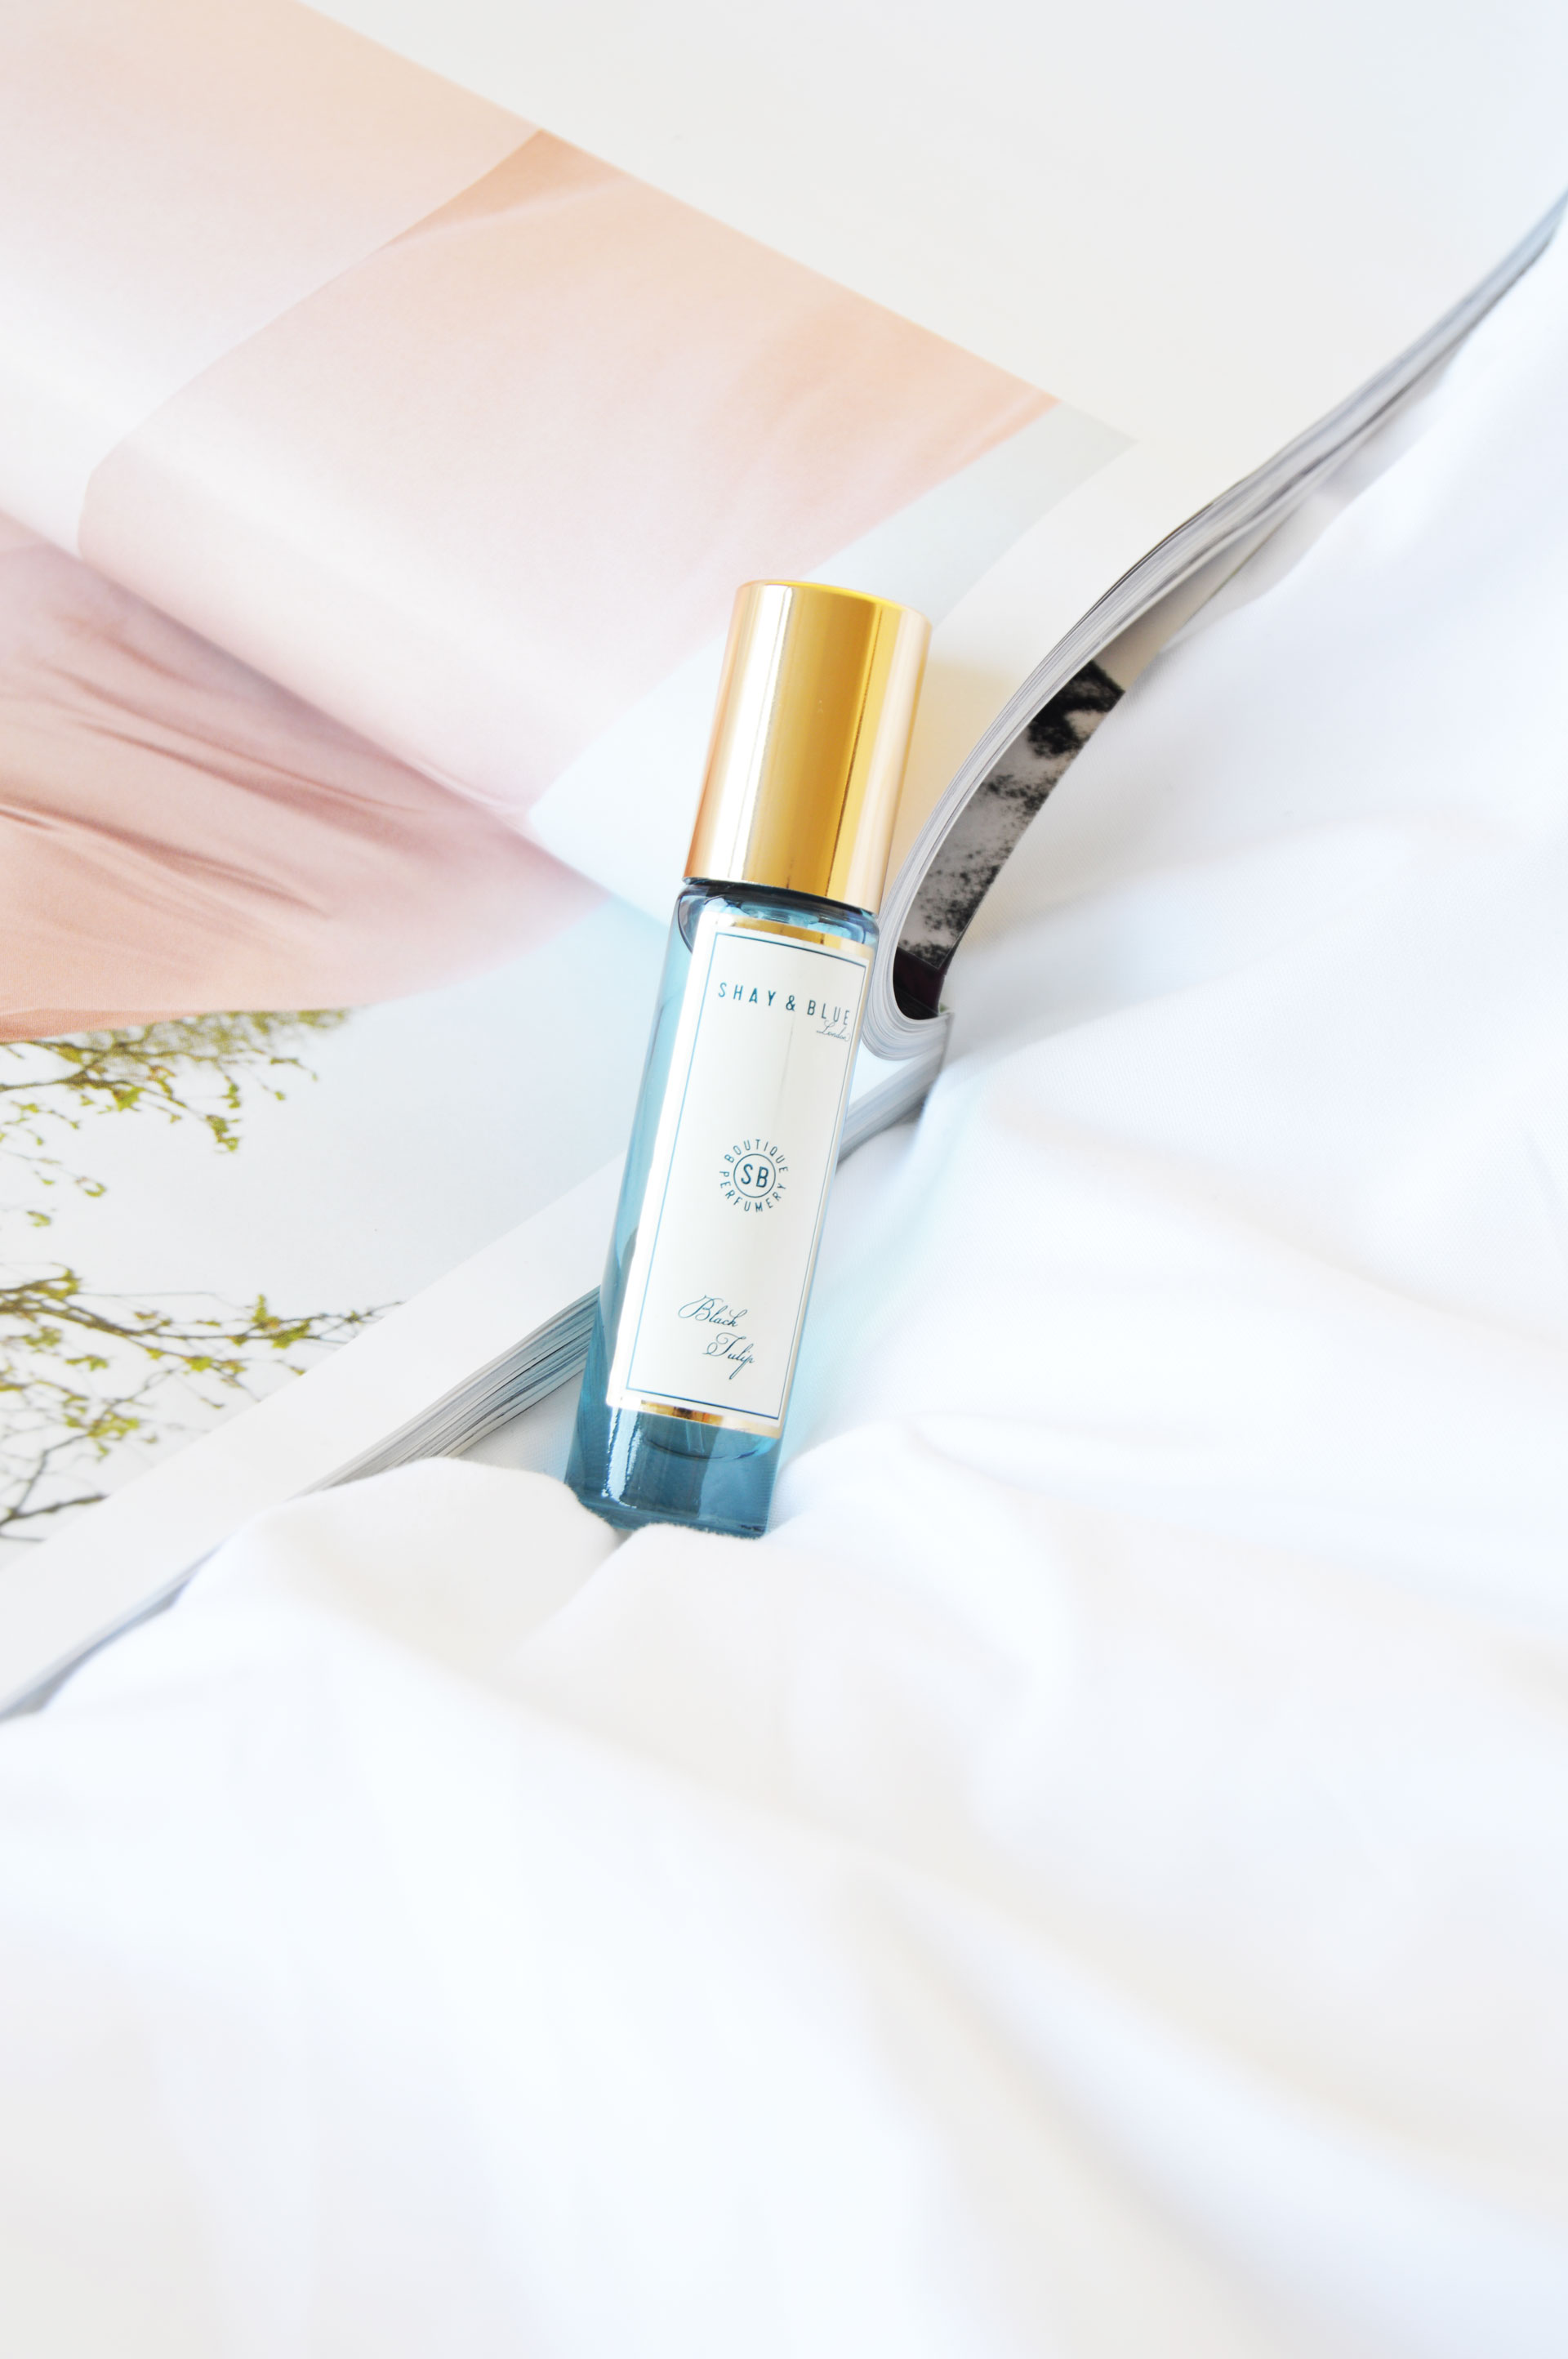 Shay & Blue Black Tulip Natural Spray Fragrance Review | M&S Advent Calendar, The Book of Beauty